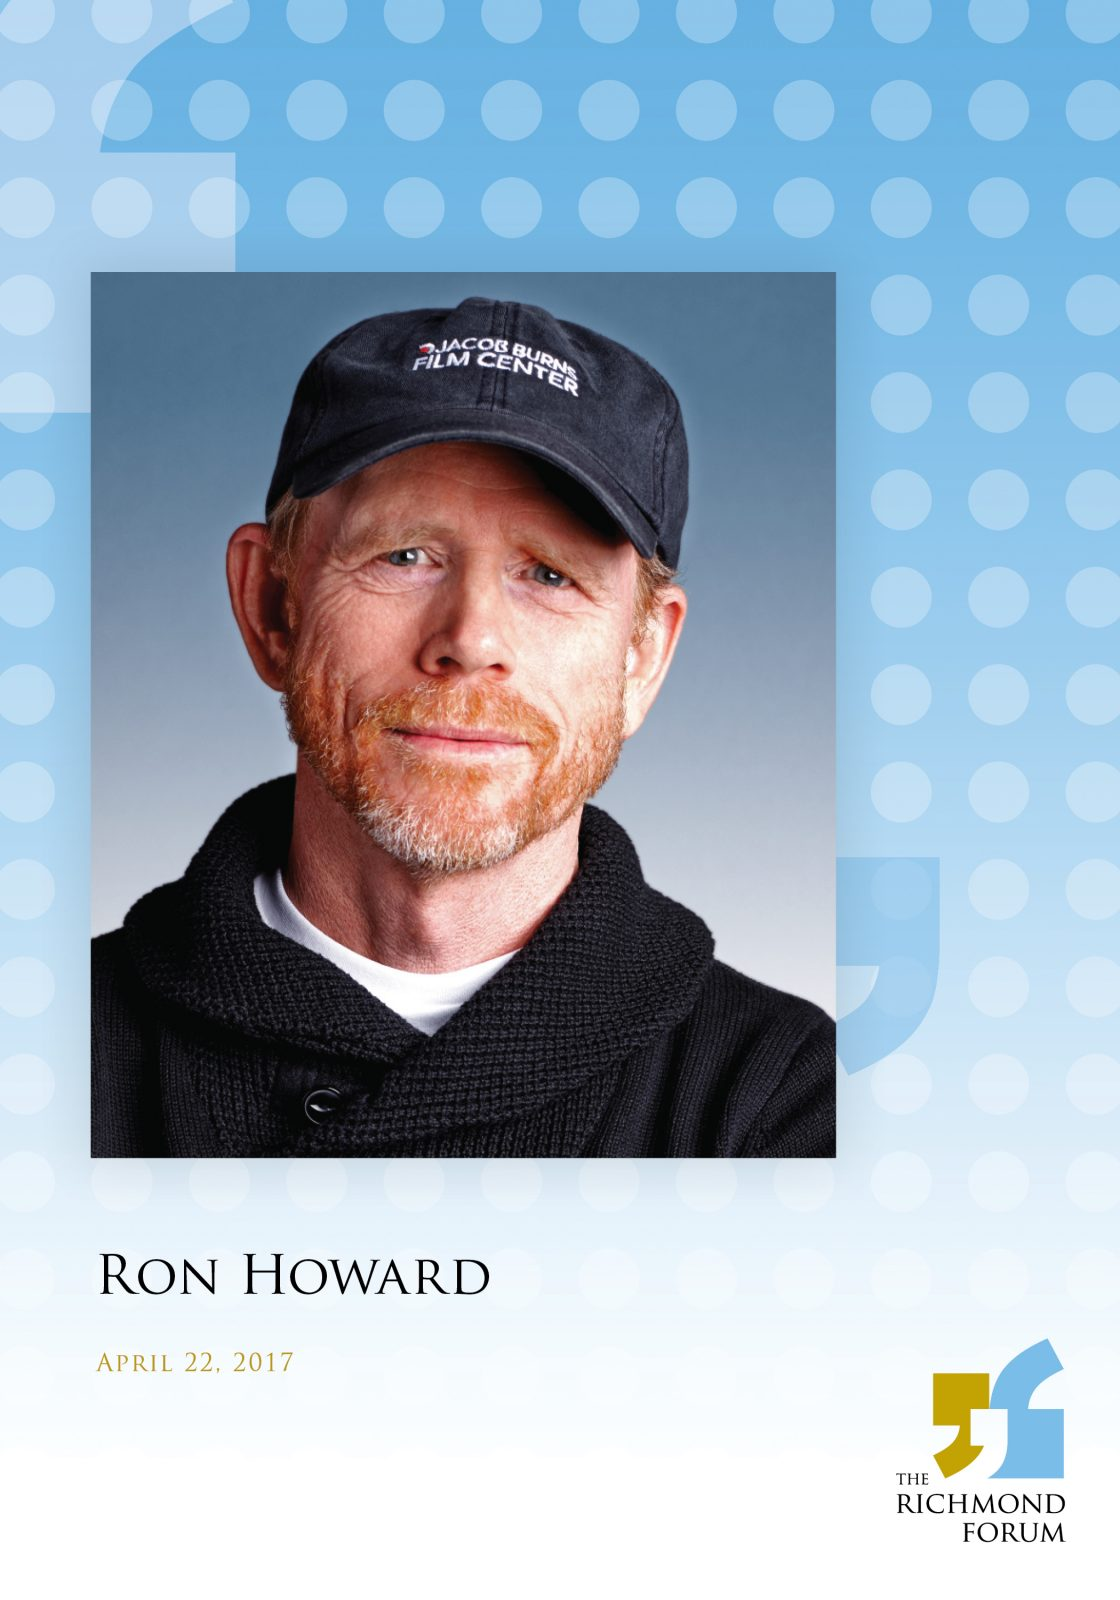 ron howard at the richmond forum